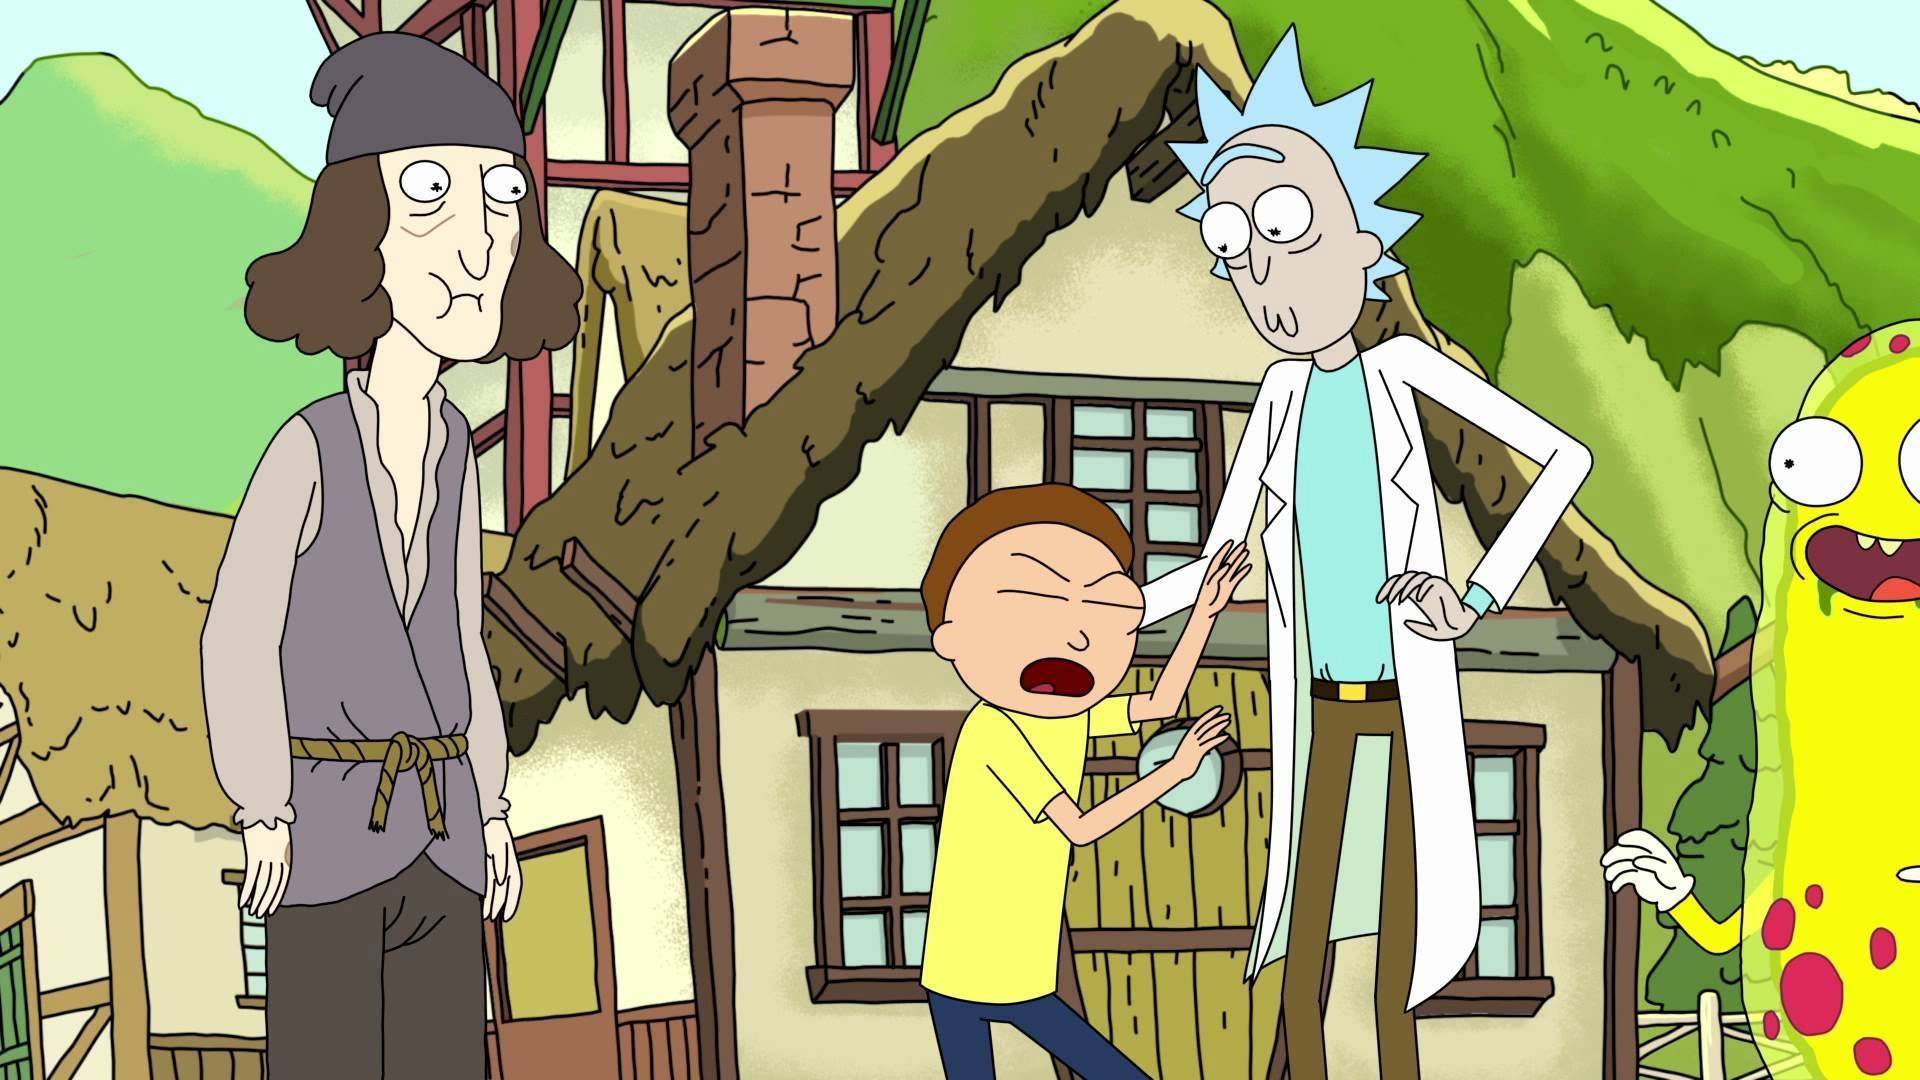 2560x1080 ImageA Rick And Morty Wallpaper (2560x1080 as requested by MnMWiz) .